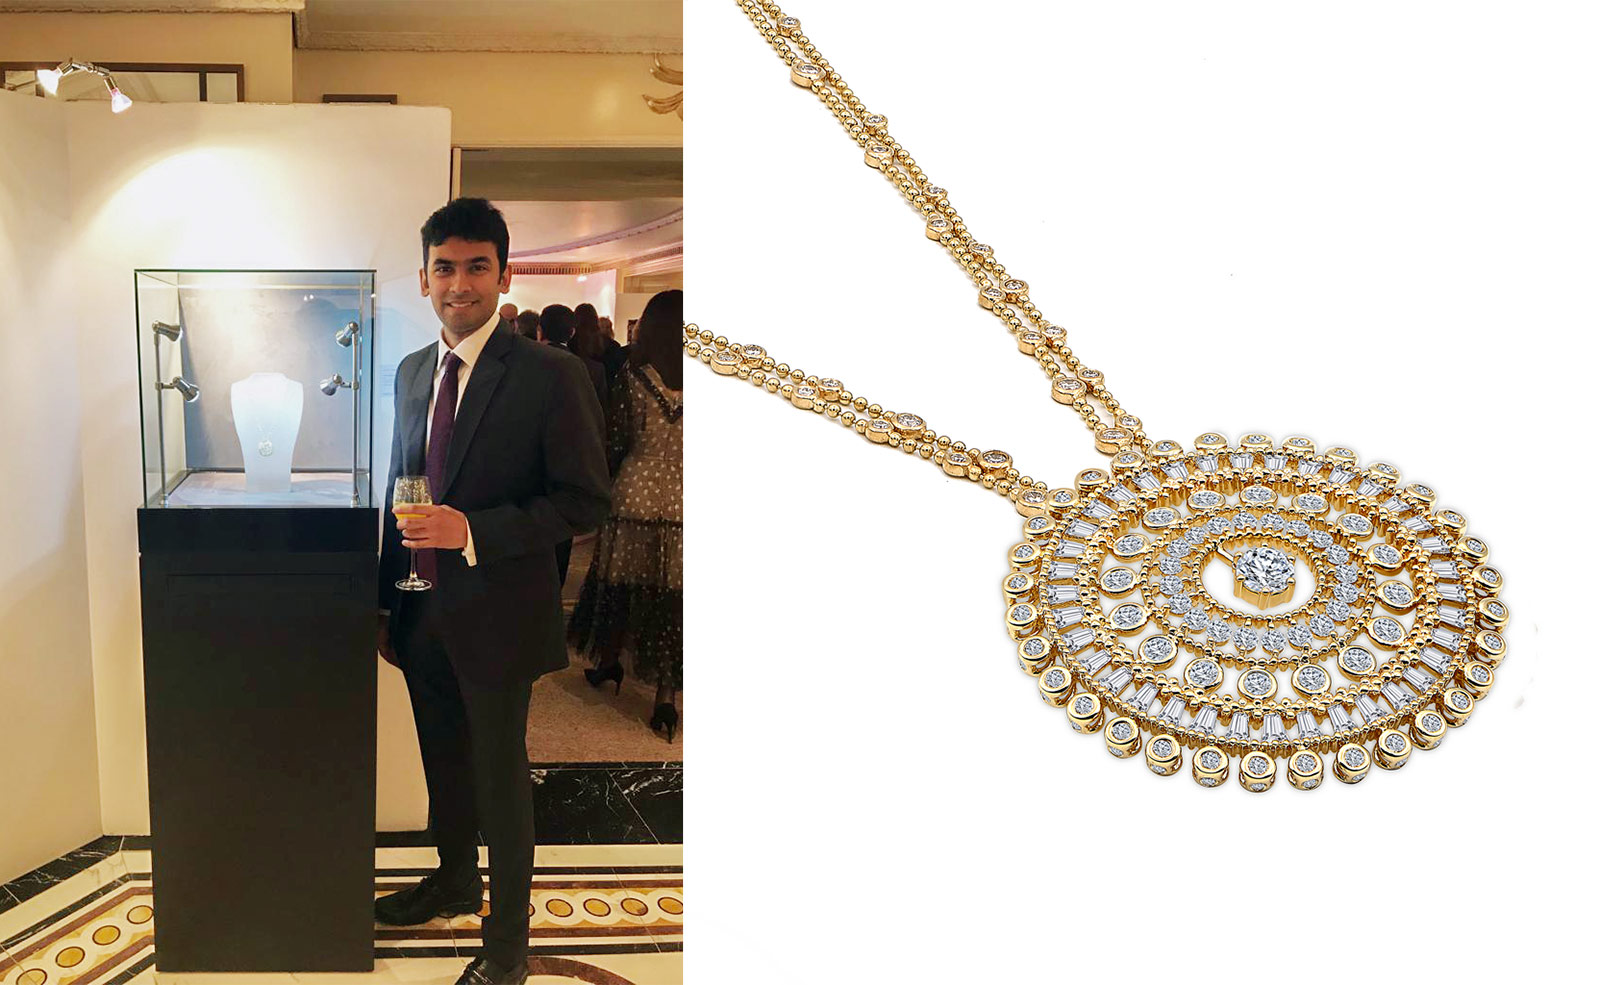 Harakh Mehta with the Harakh 'Sunlight' necklace with diamonds in yellow gold